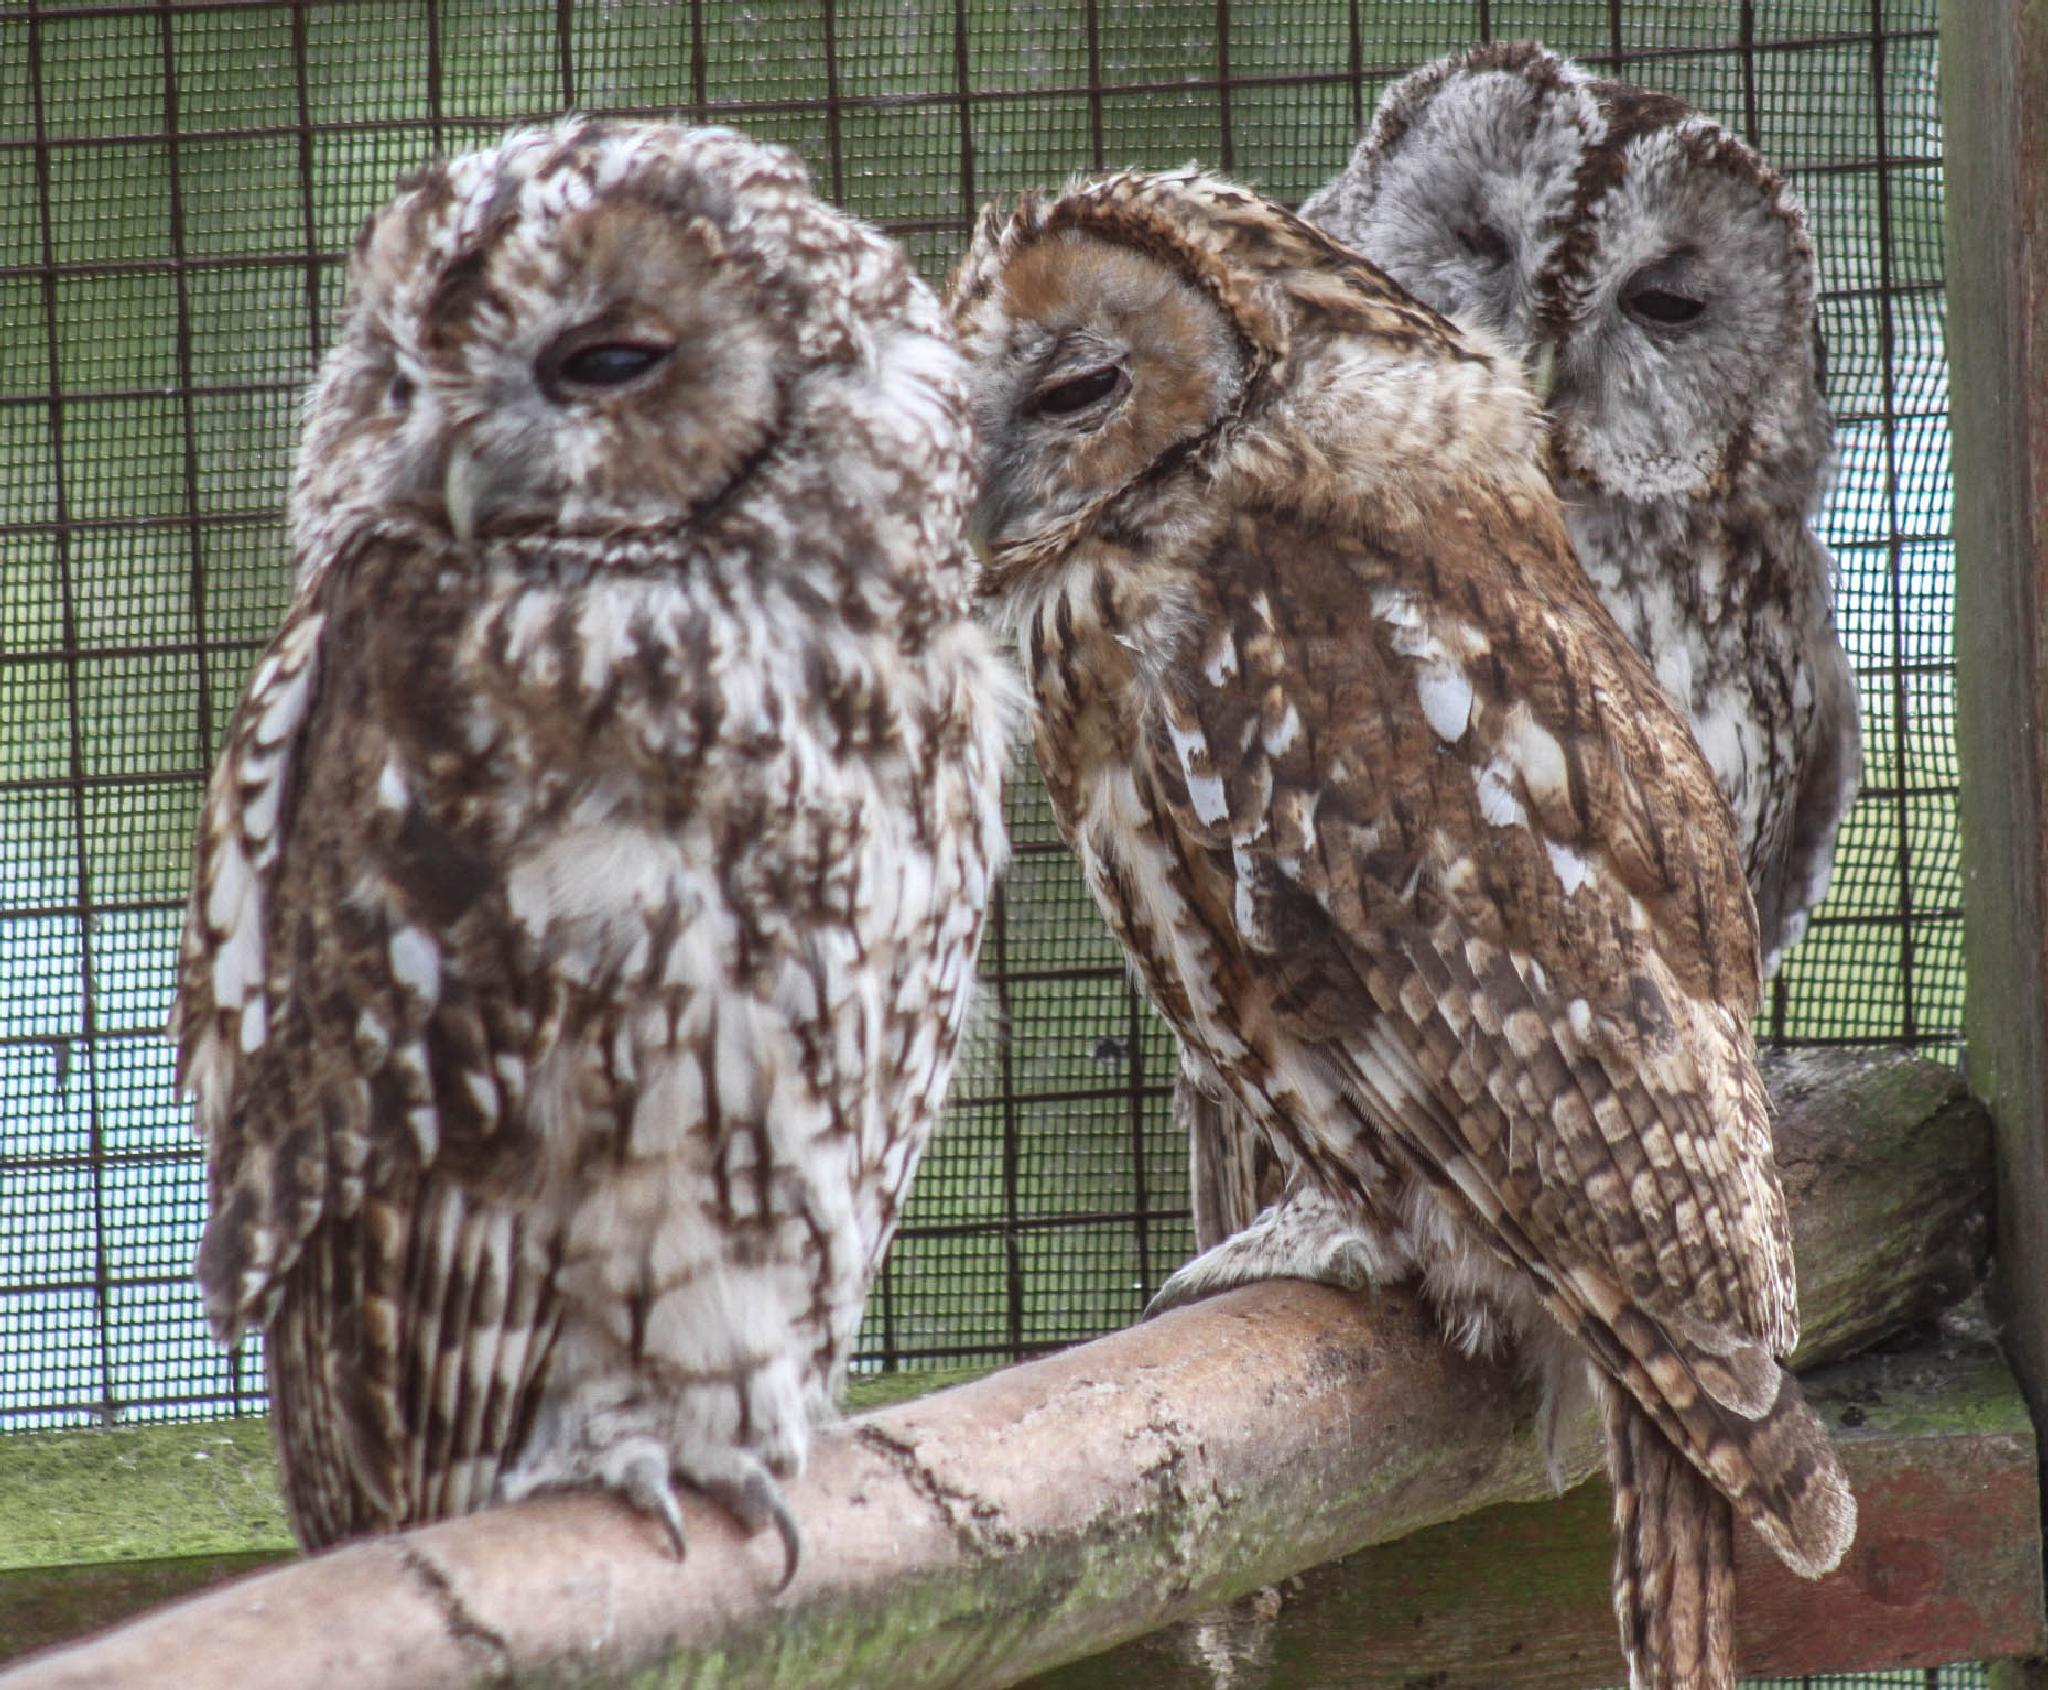 Toowhoo's company three's a crowd by garry-chisholm1